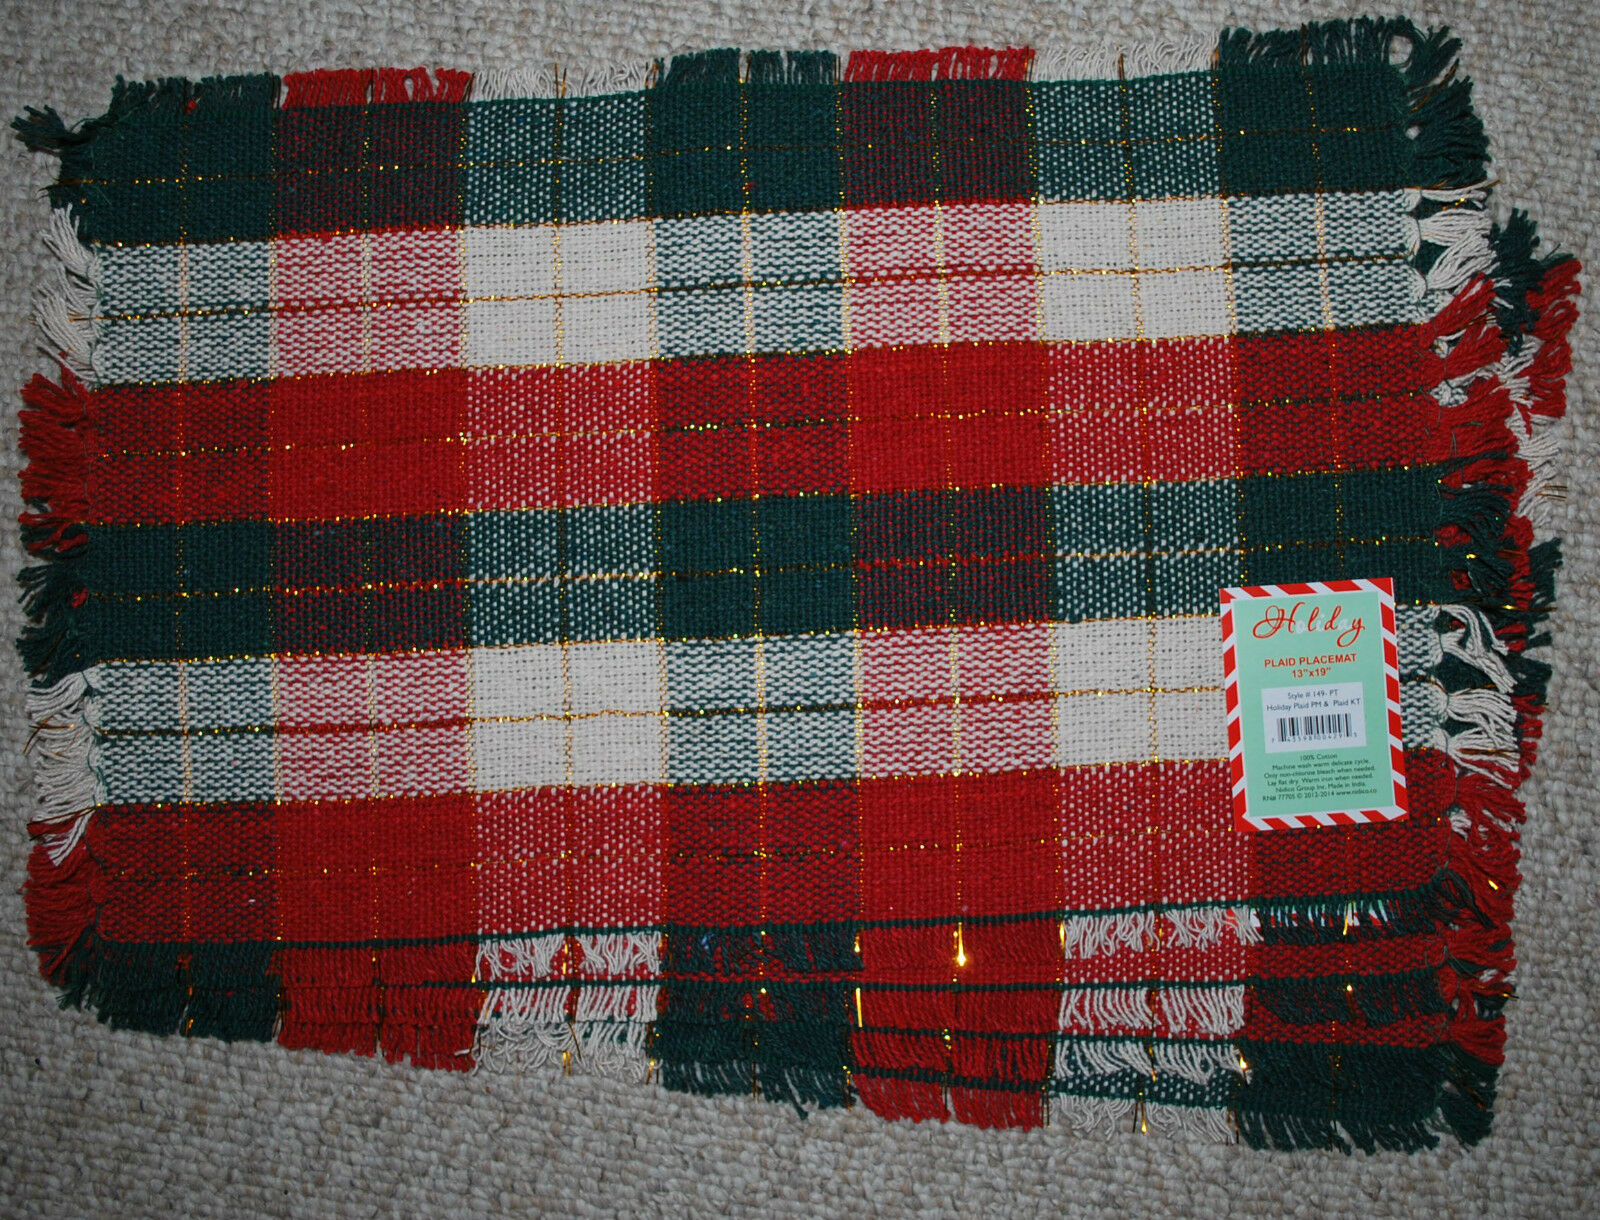 Set 4 Cotton Woven Placemats/ Christmas Plaid /red/green/cream